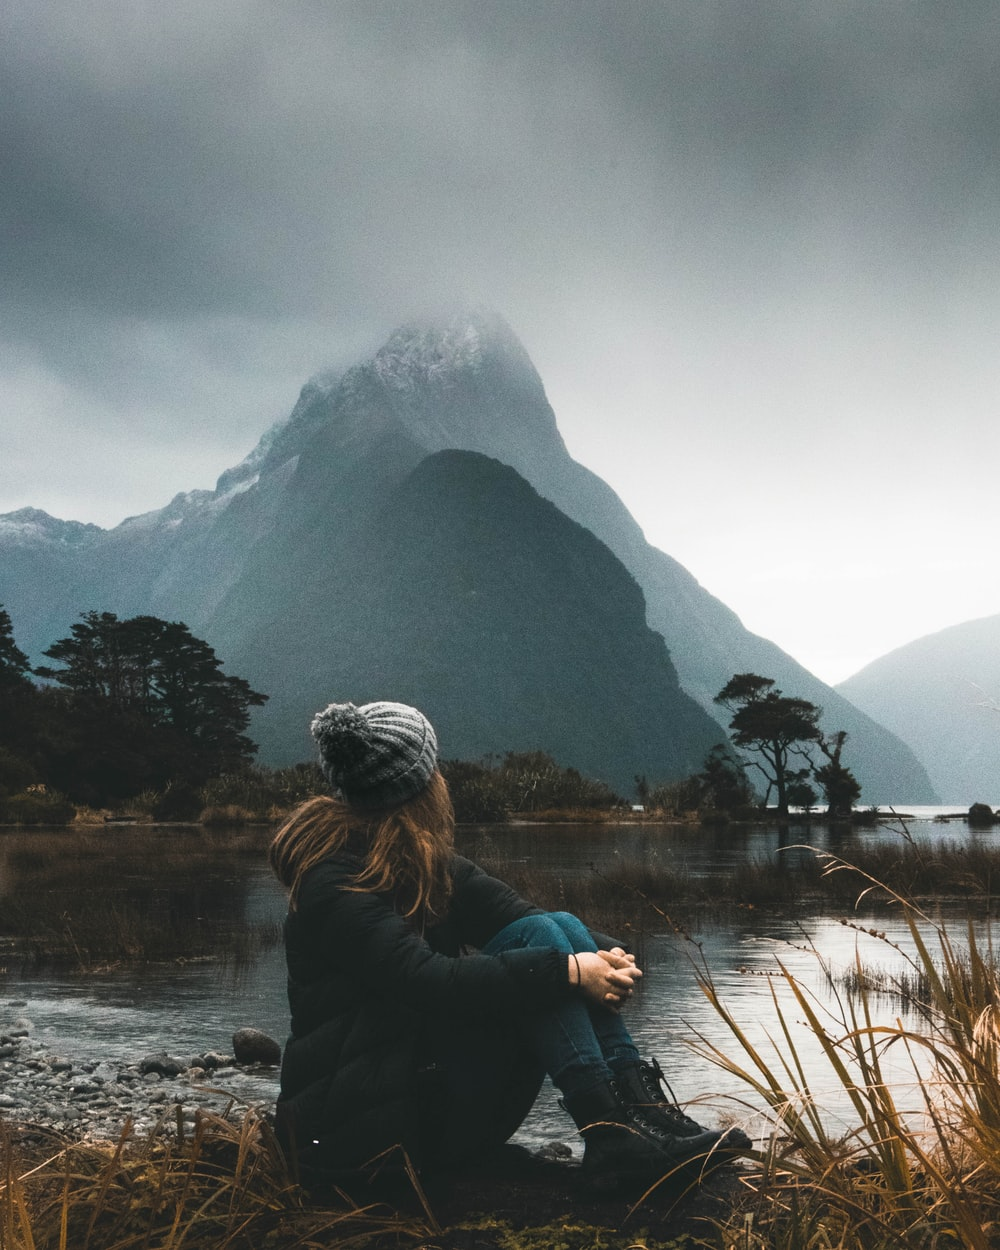 woman sitting near body of water looking at clouds